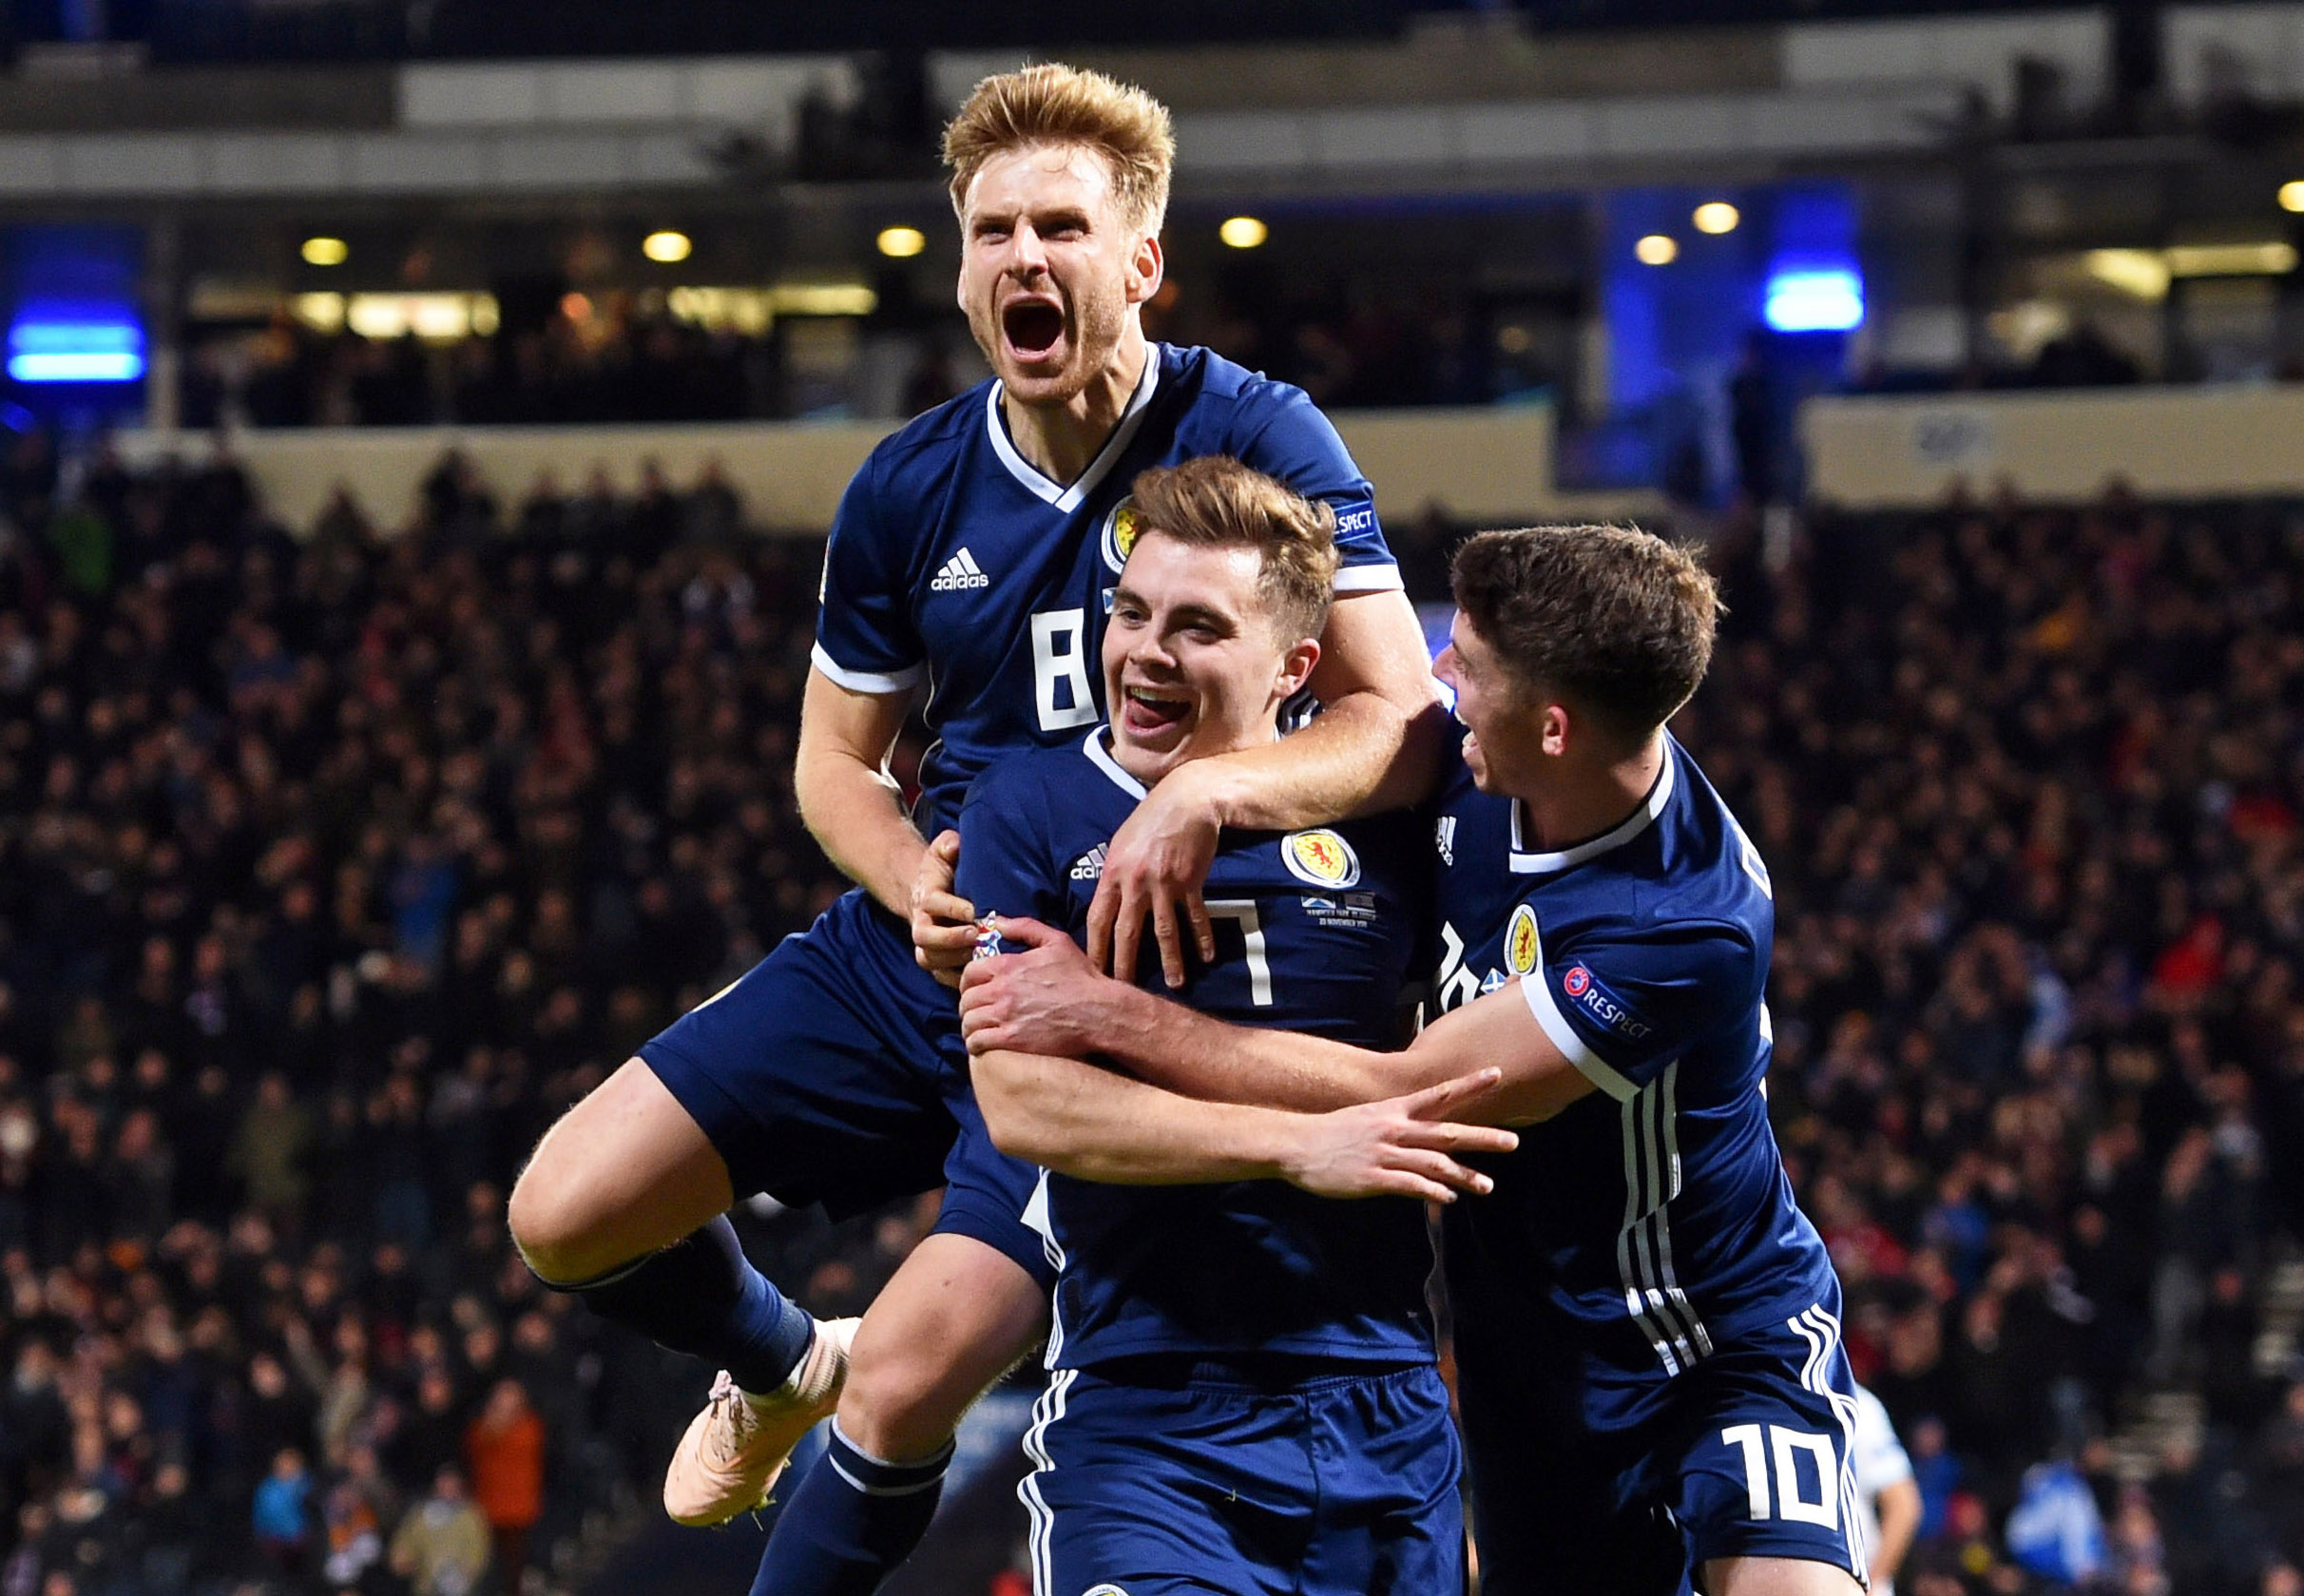 Scotland's James Forrest celebrates after scoring to make it 2-1, with Stuart Armstrong (left) and Ryan Christie